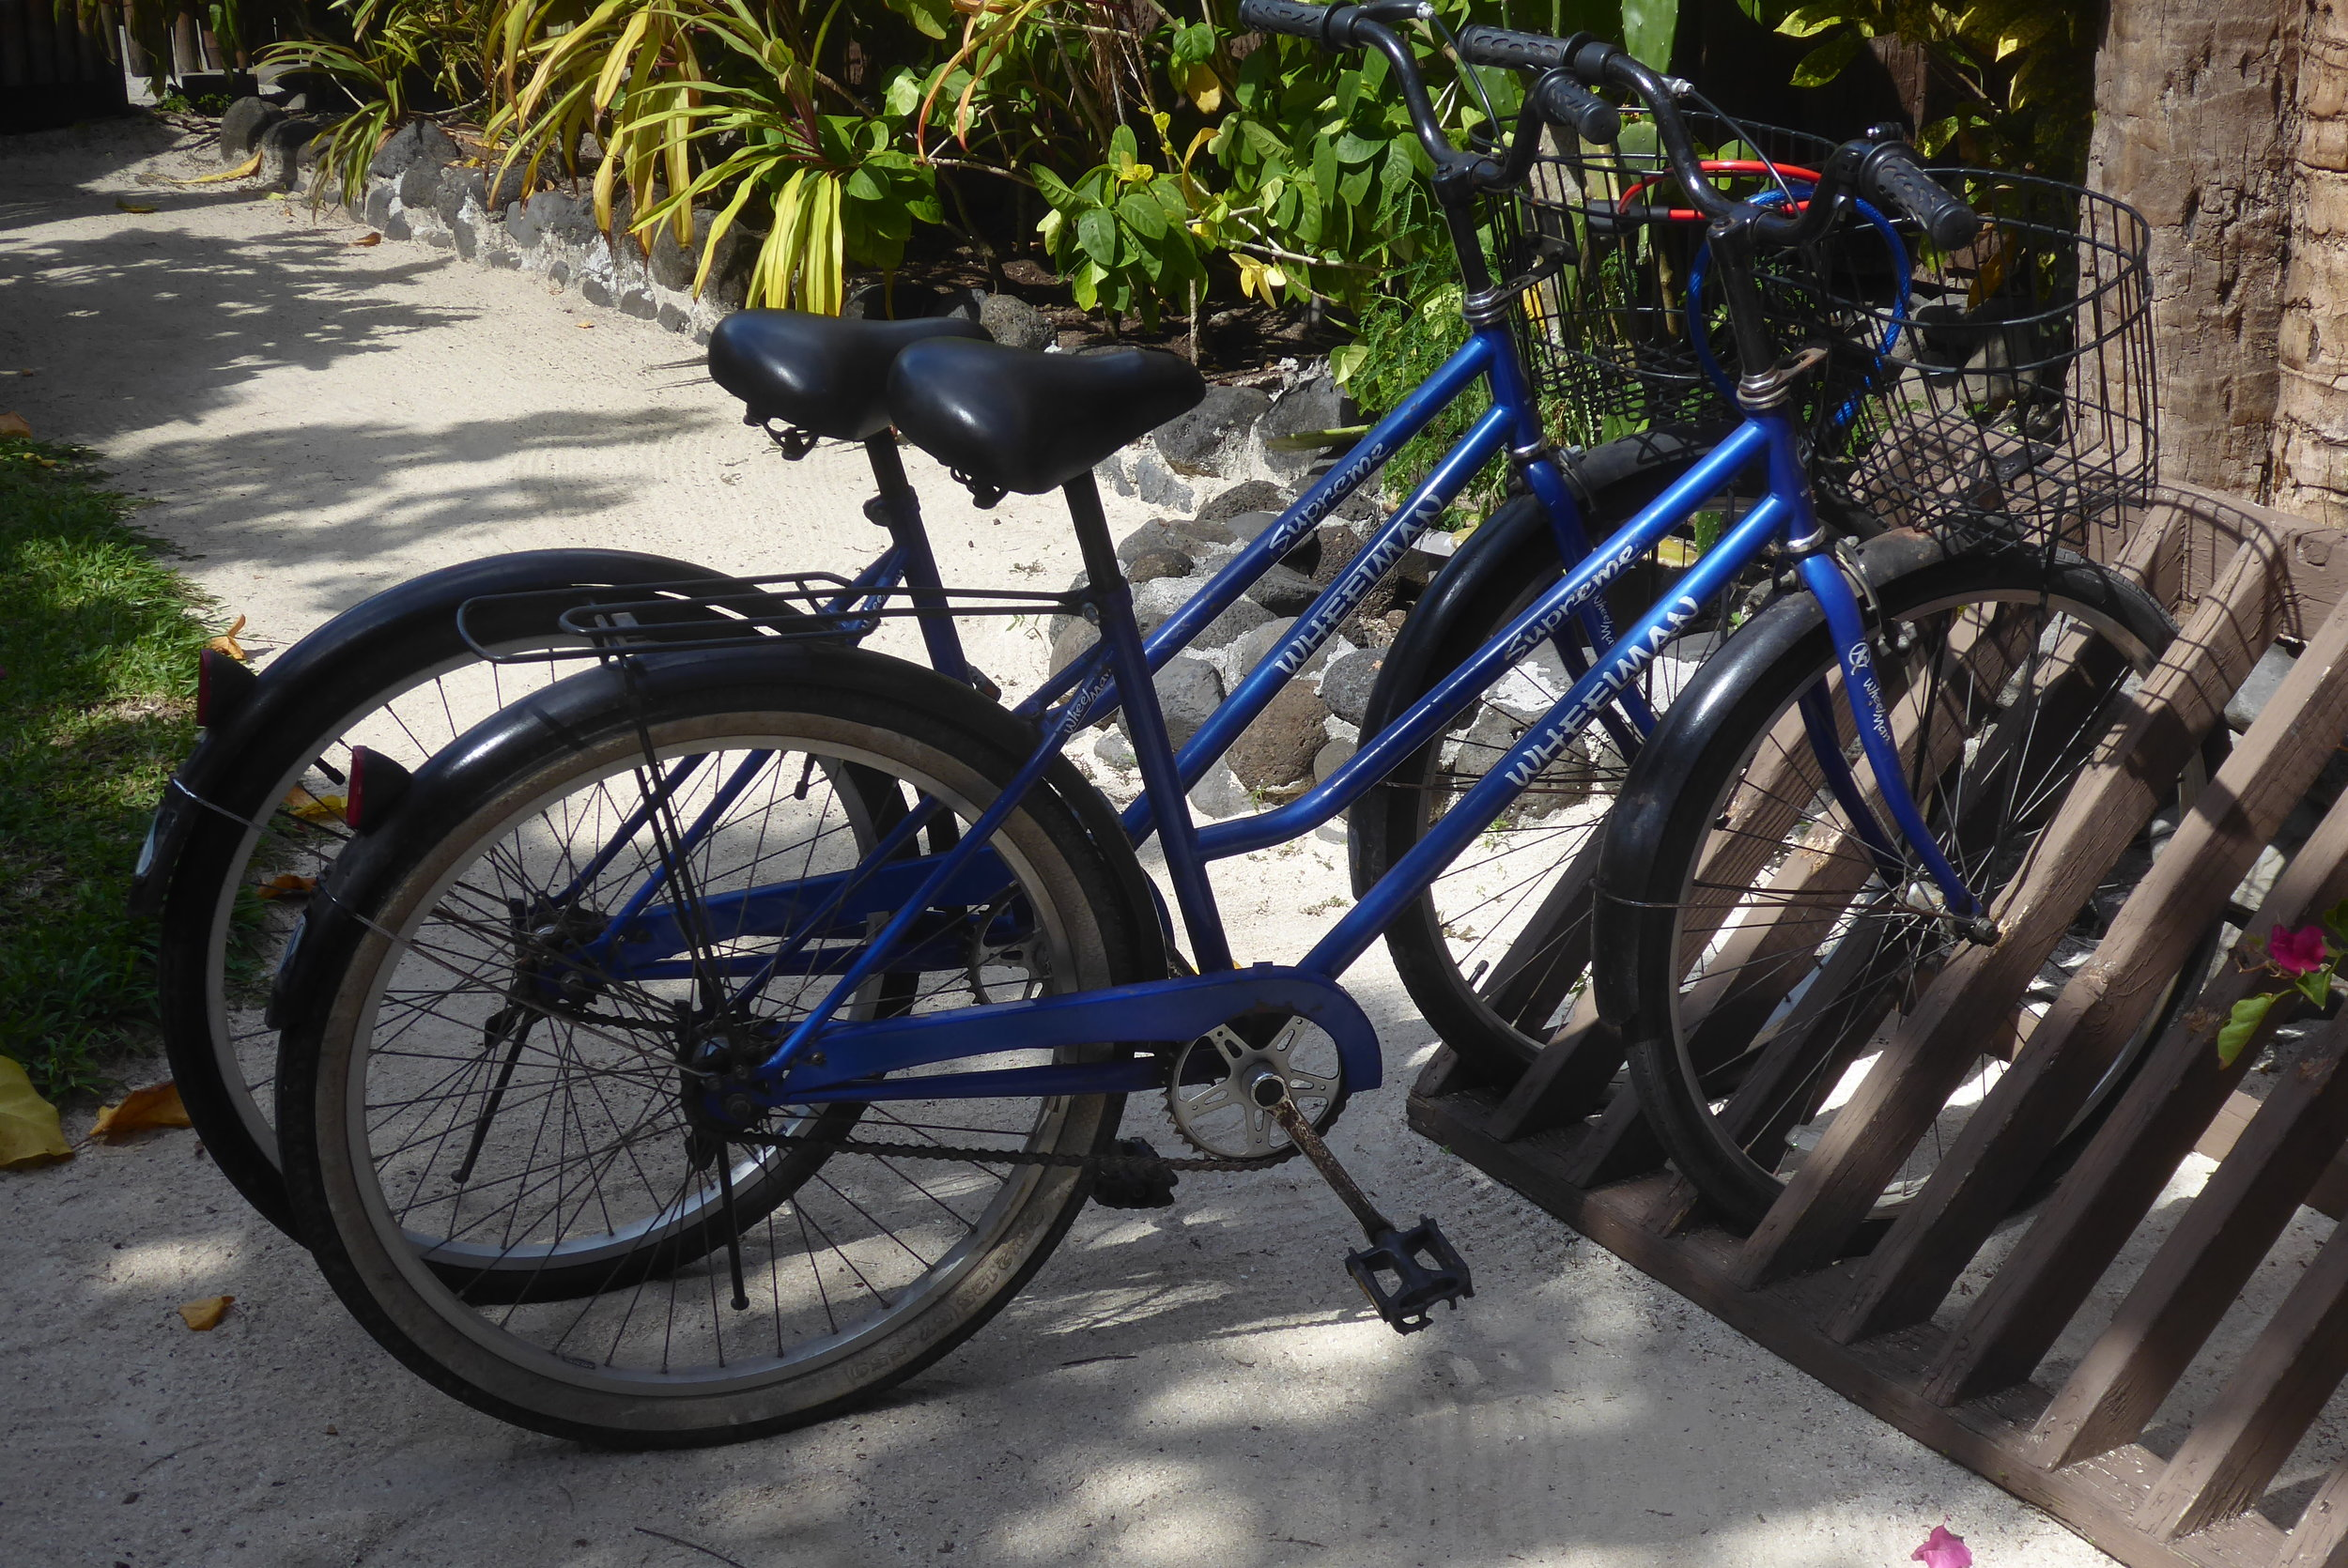 Typical bike for hire on Bora Bora